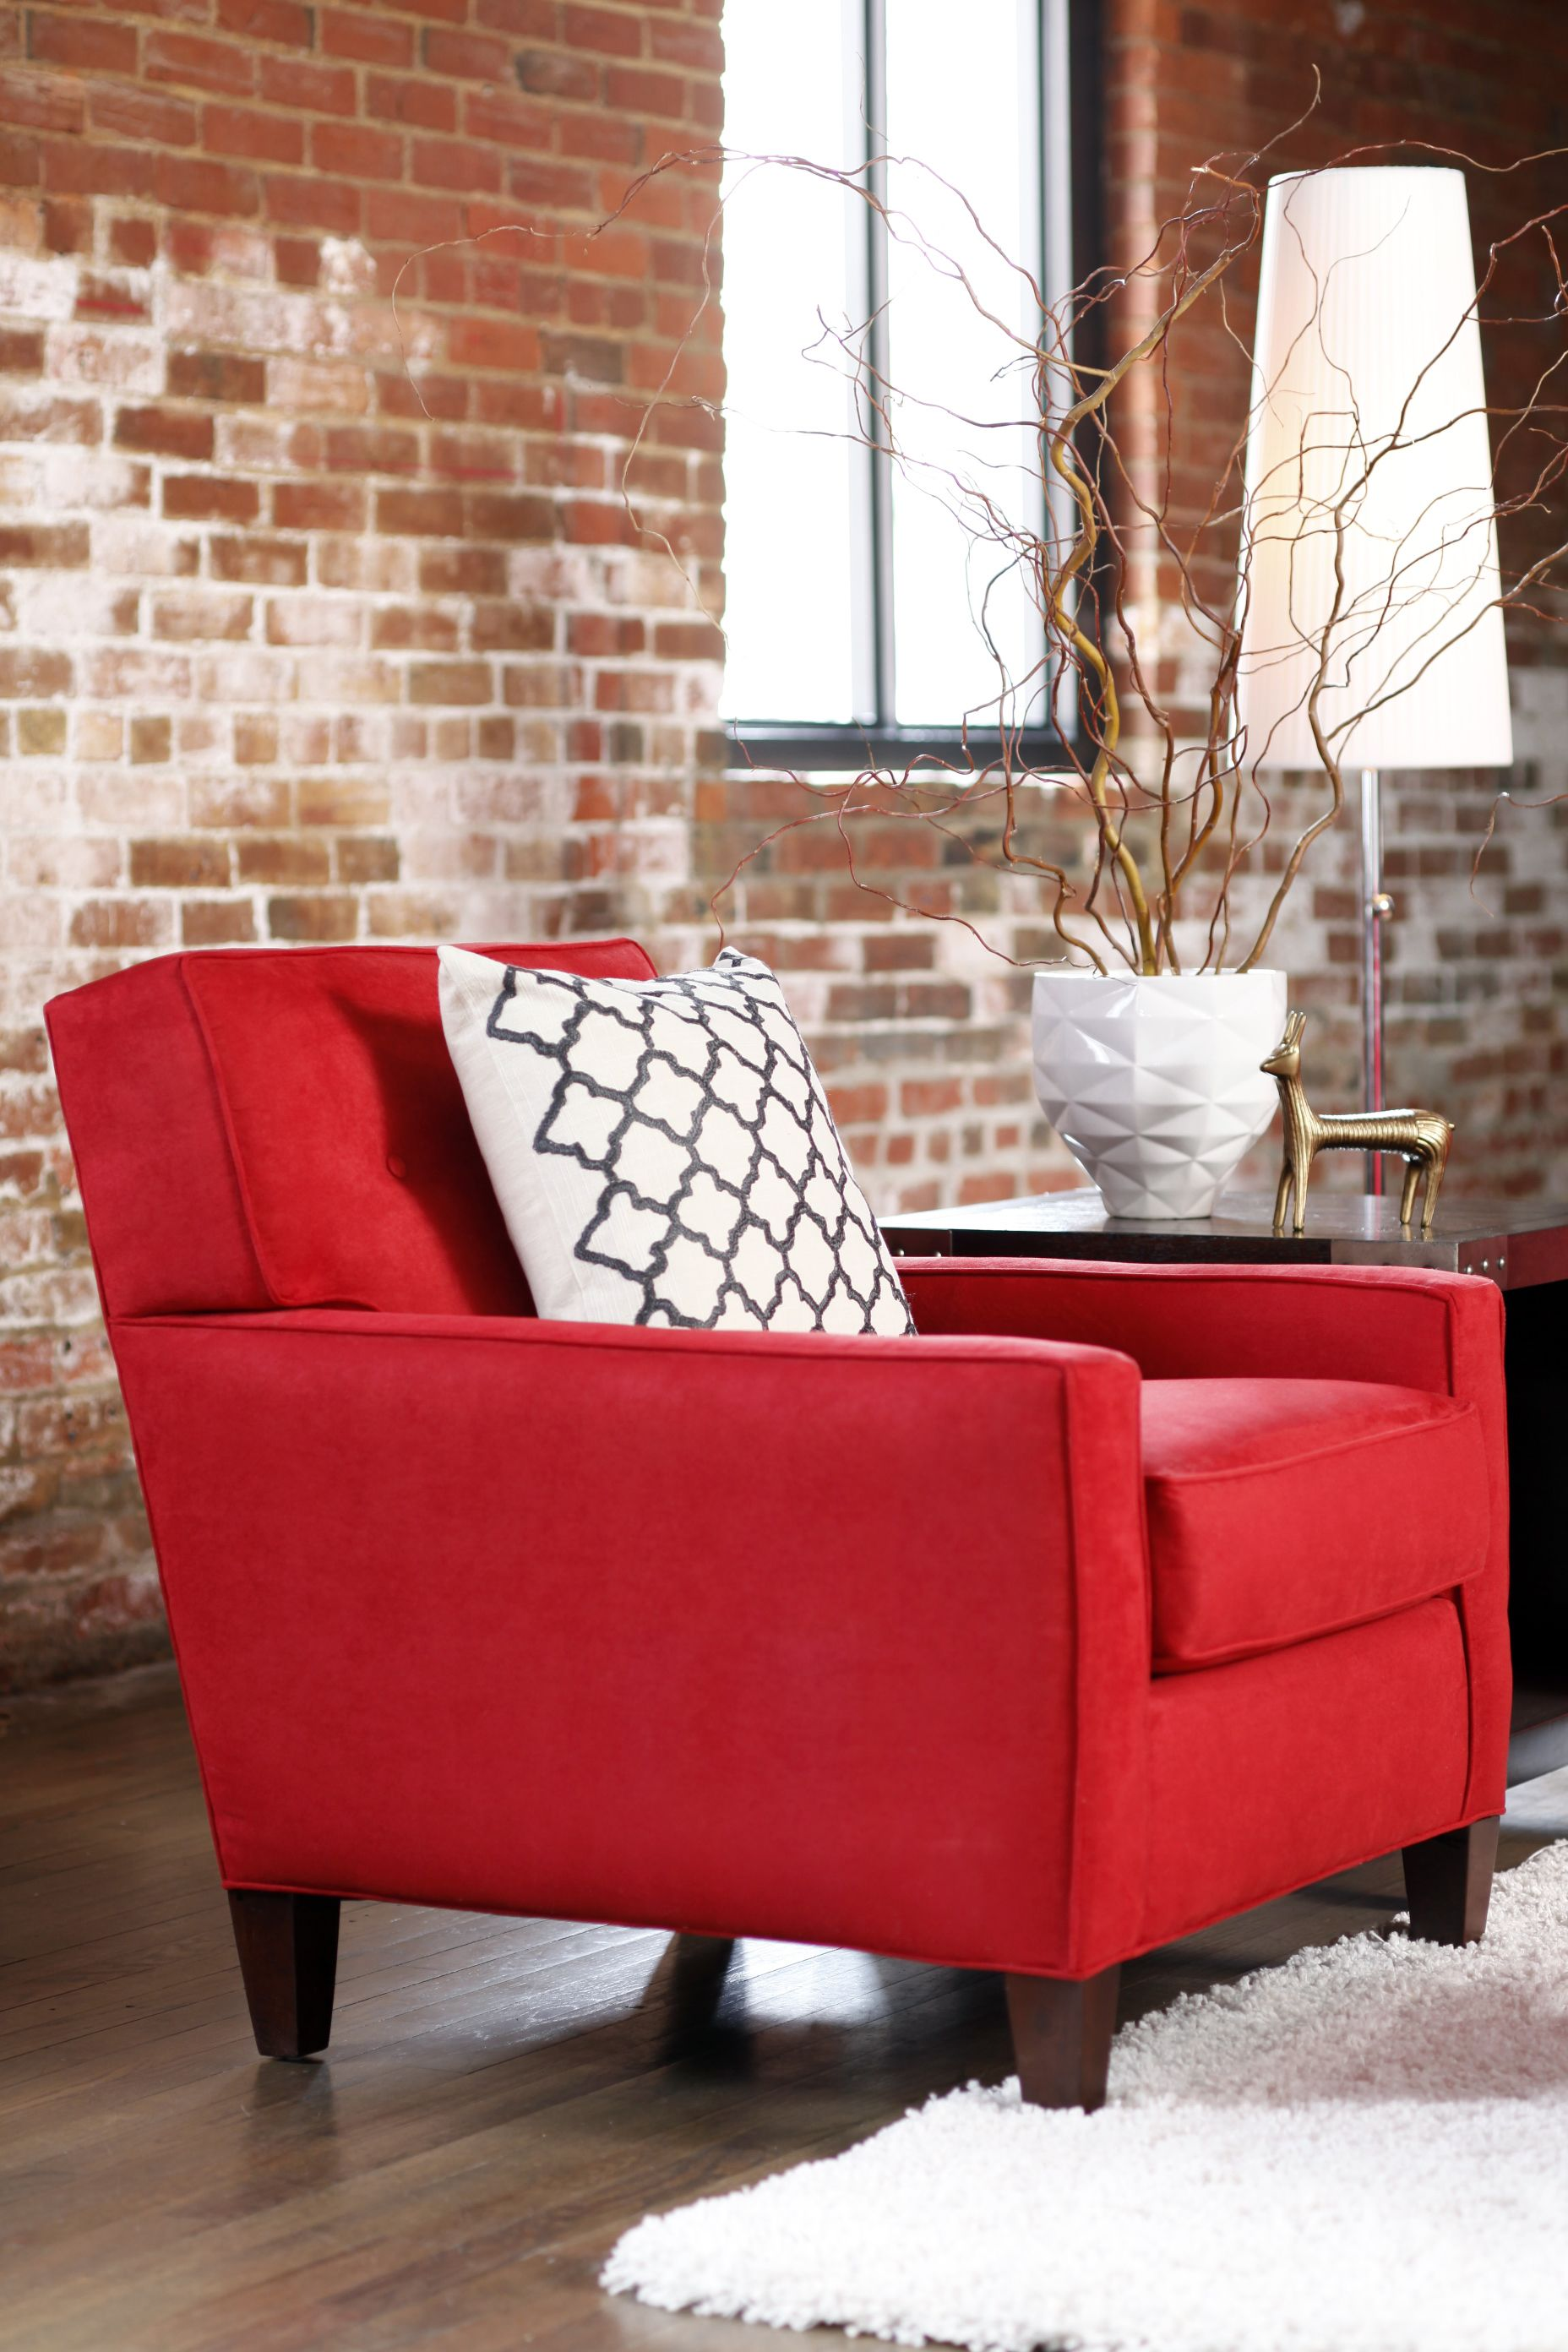 Don T Be Afraid To Add A Punch Of Color In Your Home You Can Do It So Easily With An Accent C Red Furniture Living Room Red Chair Living Room Red